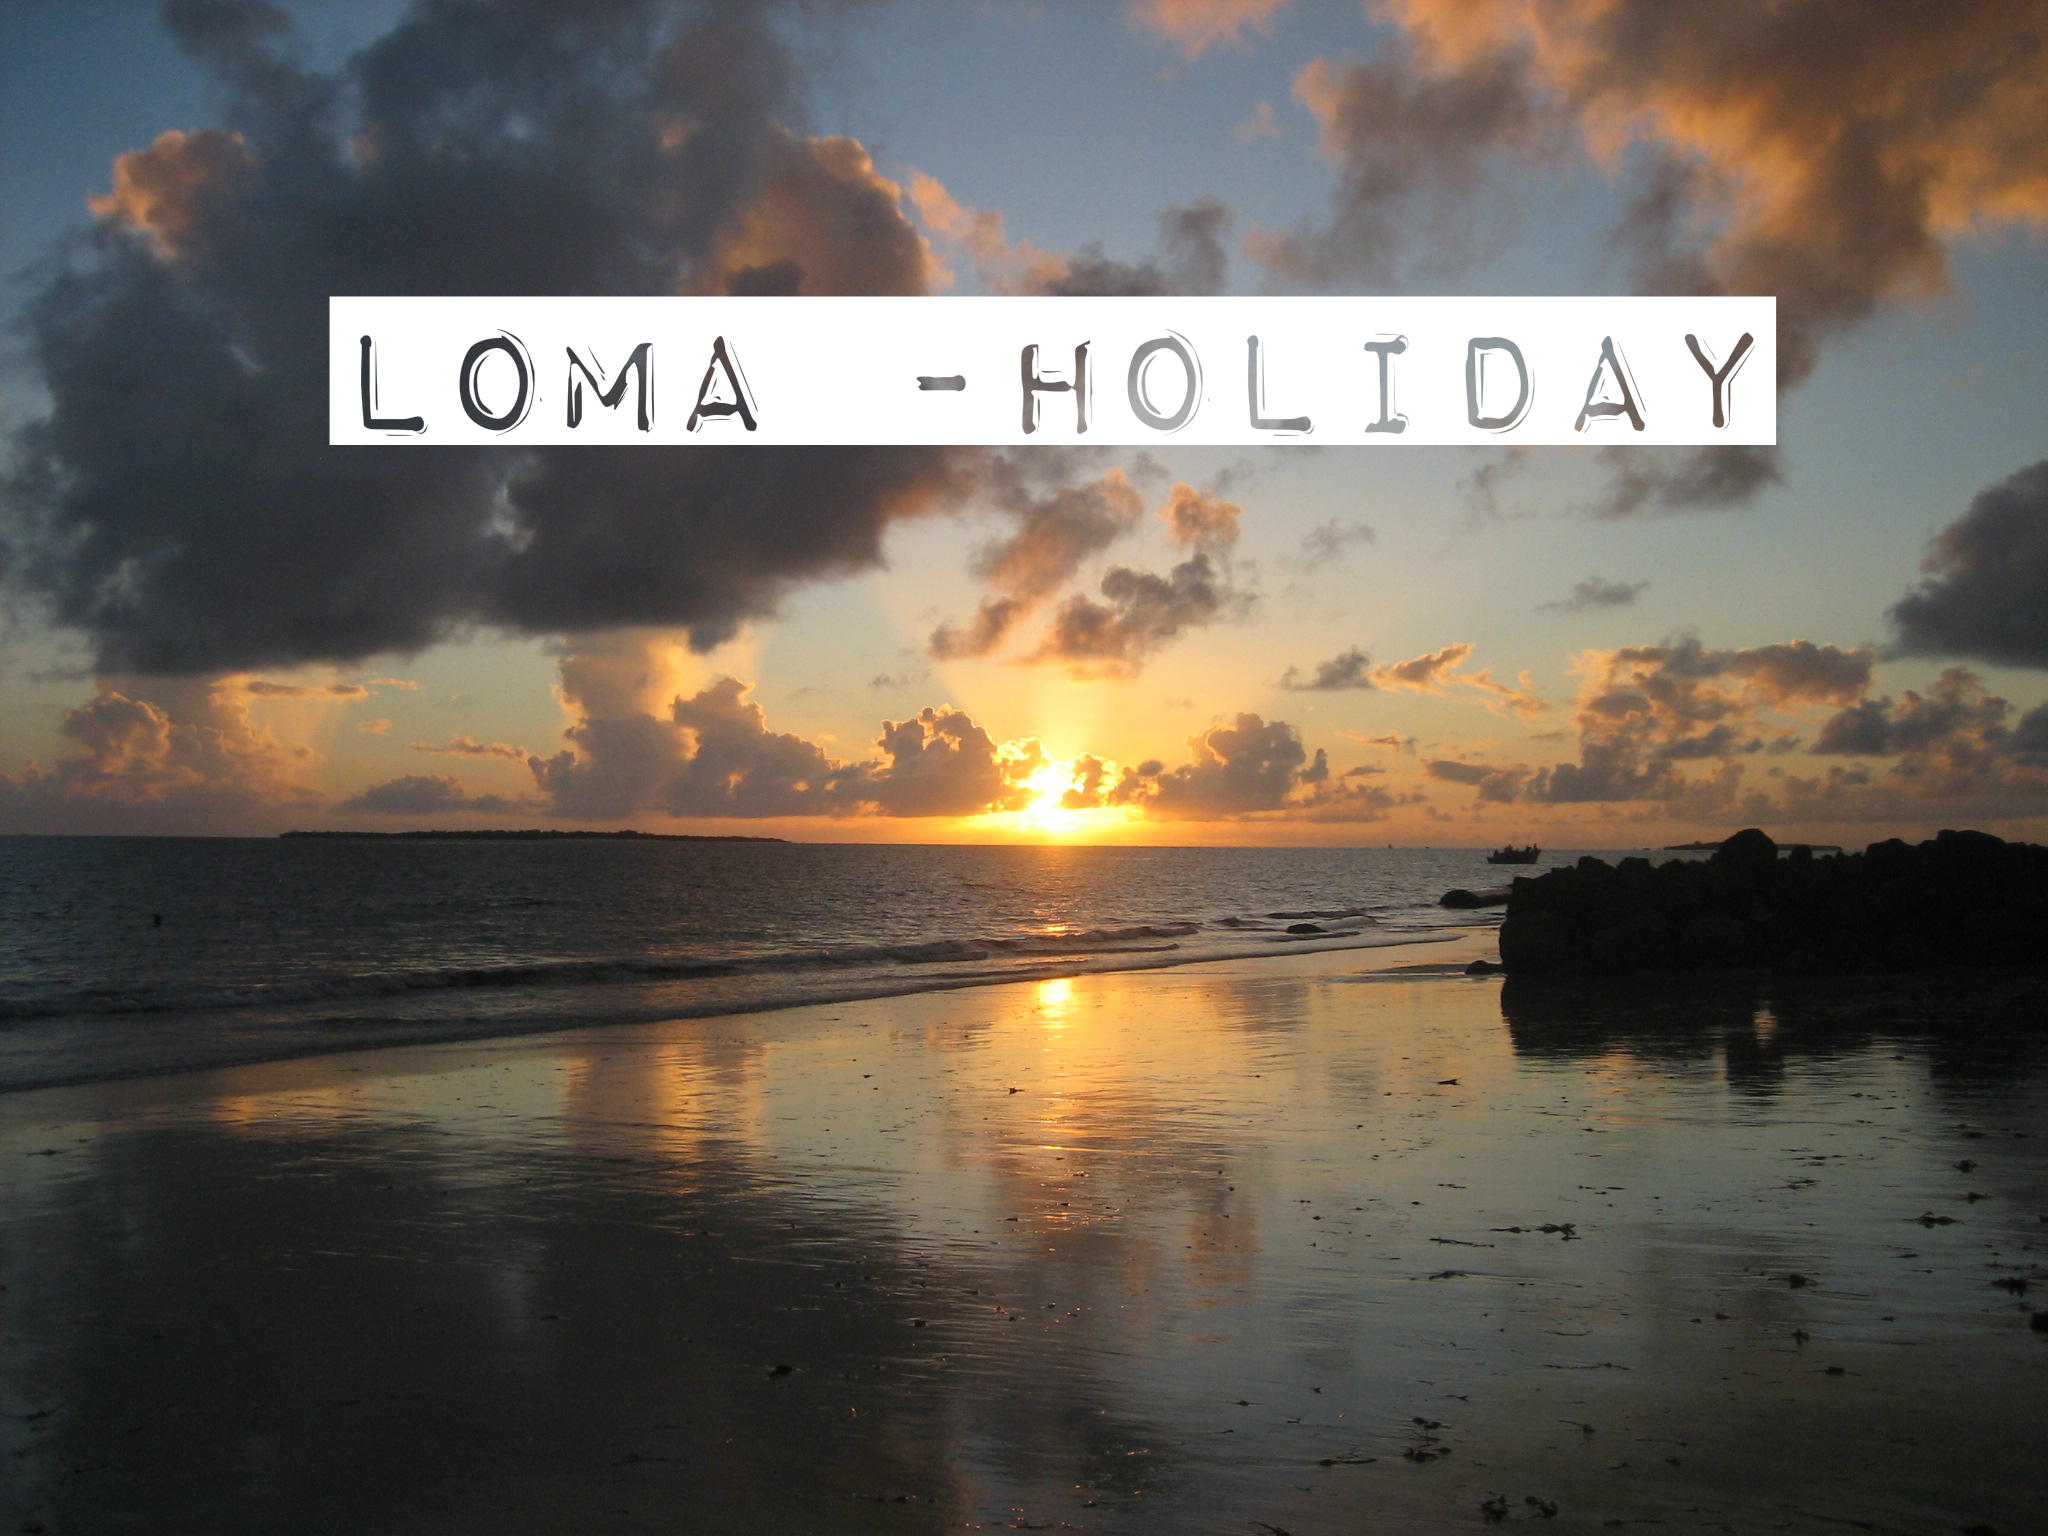 Loma – holiday